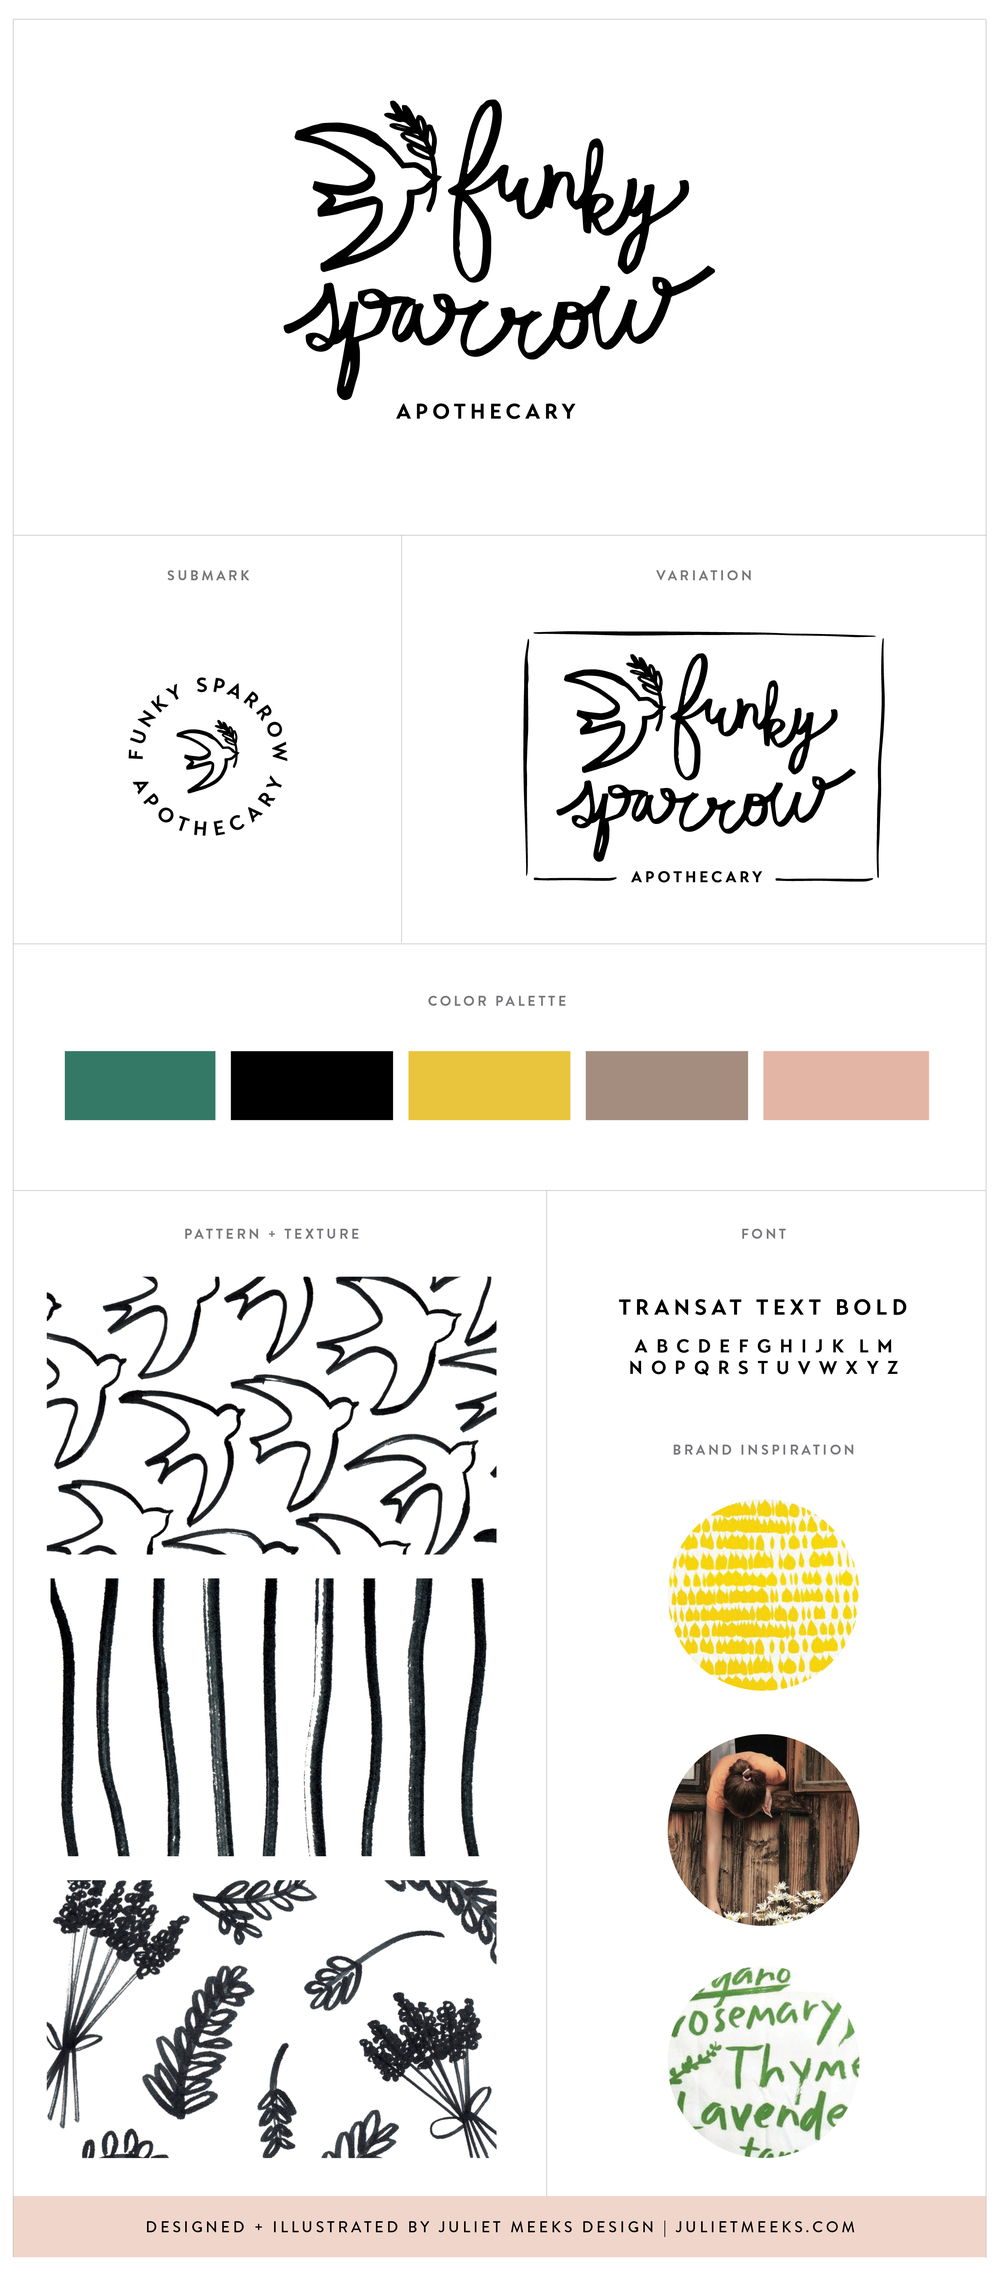 Funky Sparrow Branding and Lettering by Juliet Meeks Design